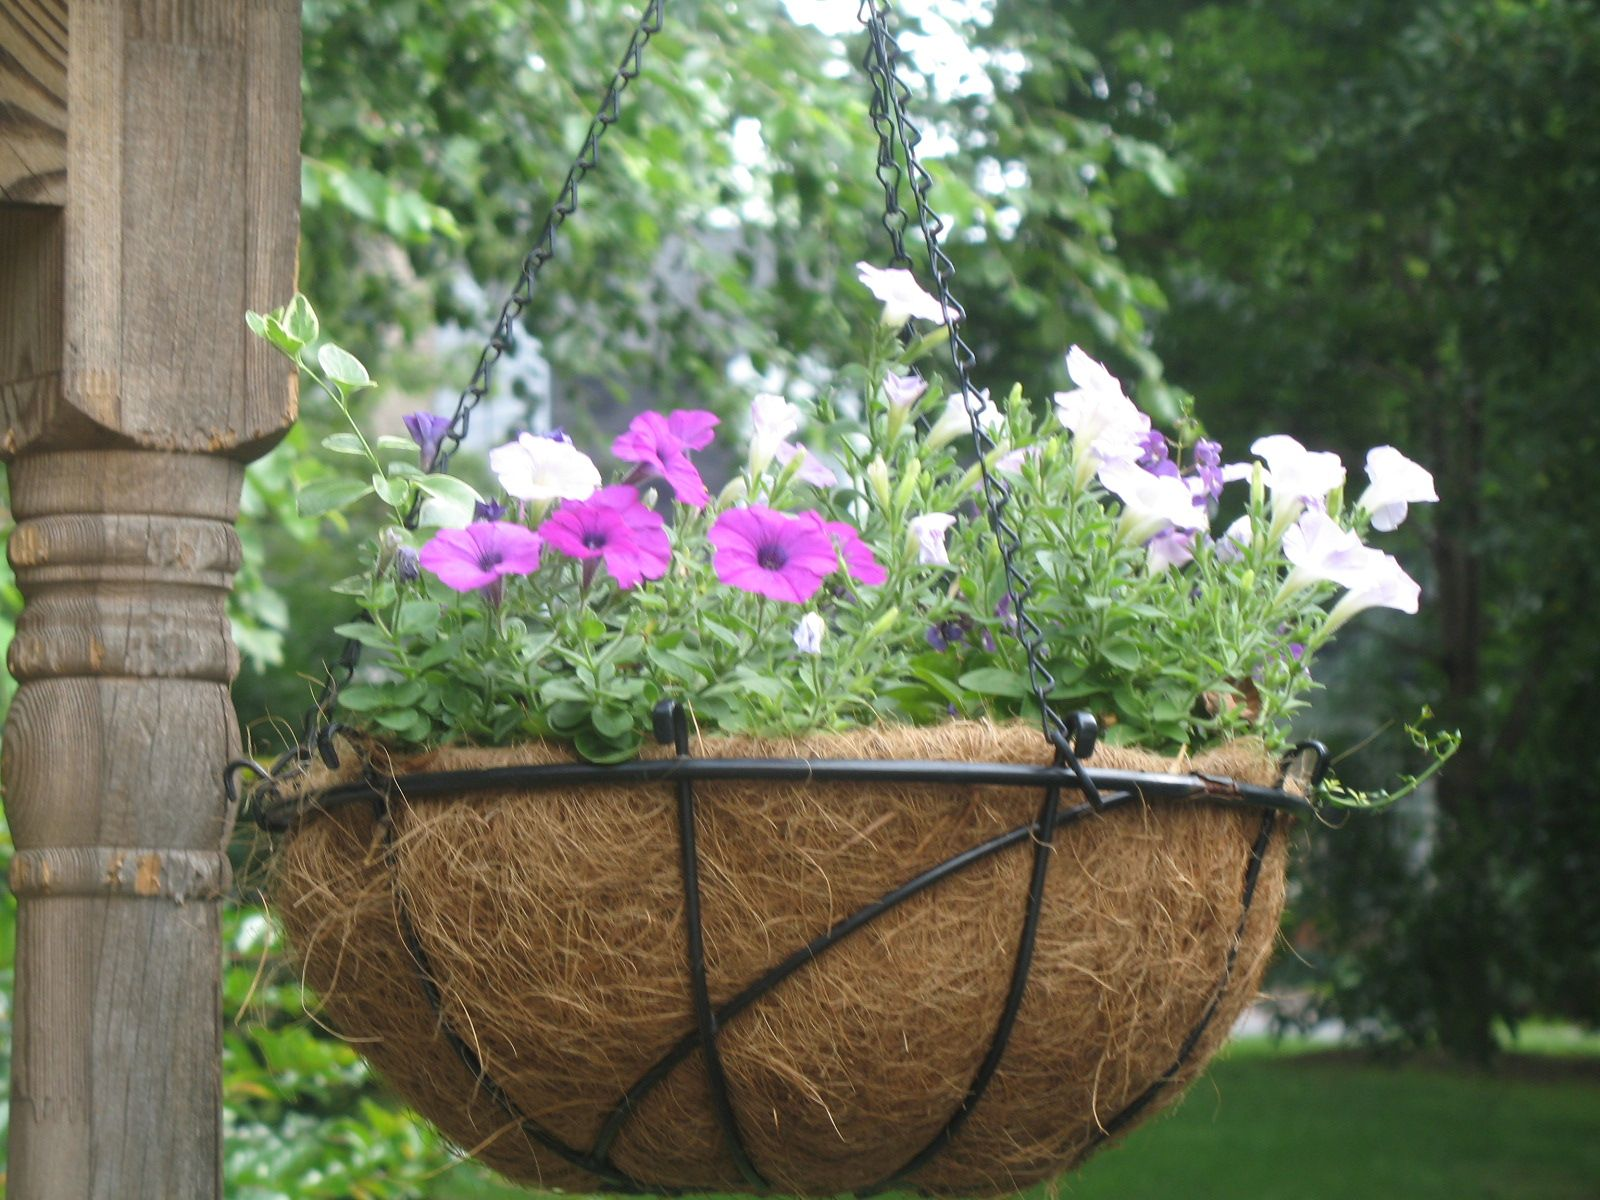 Pin By Machelle Shih On Designs And Decors Hanging Basket Garden Fiber Hanging Hanging Baskets